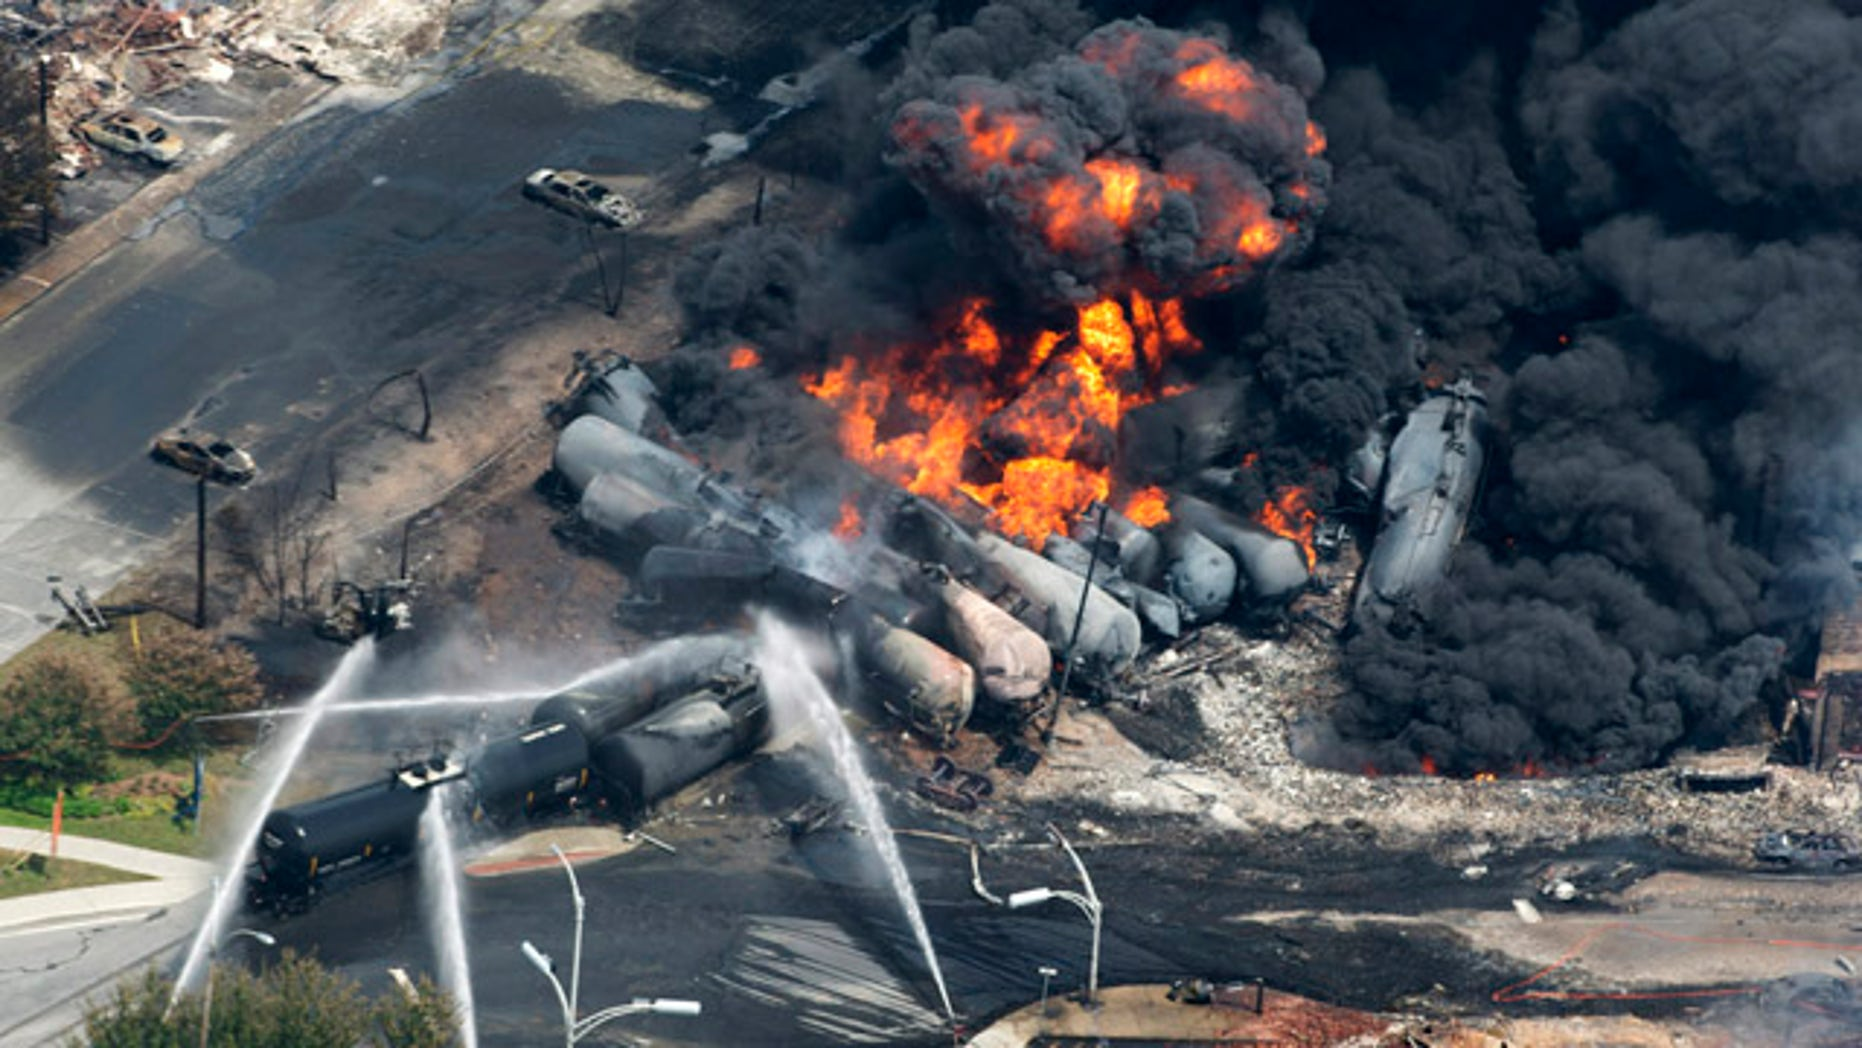 July 6, 2013: Smoke rises from railway cars that were carrying crude oil after derailing in downtown Lac Megantic, Quebec, Canada. (AP/The Canadian Press)